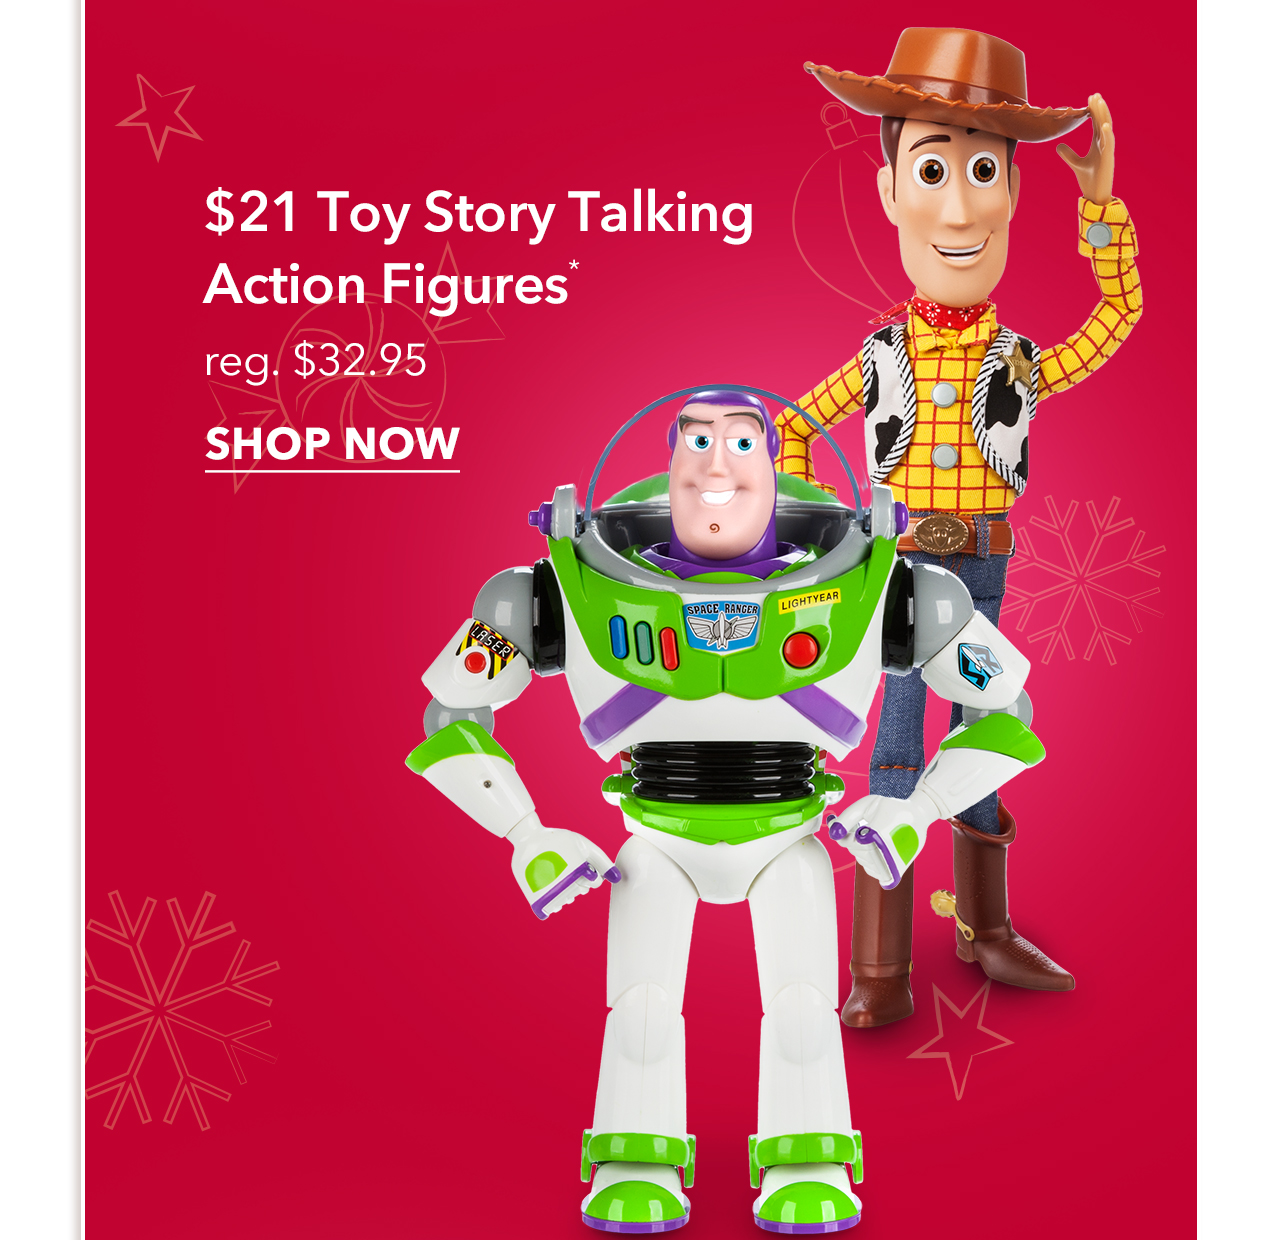 $21 Toy Story Talking Action Figures | Shop Now